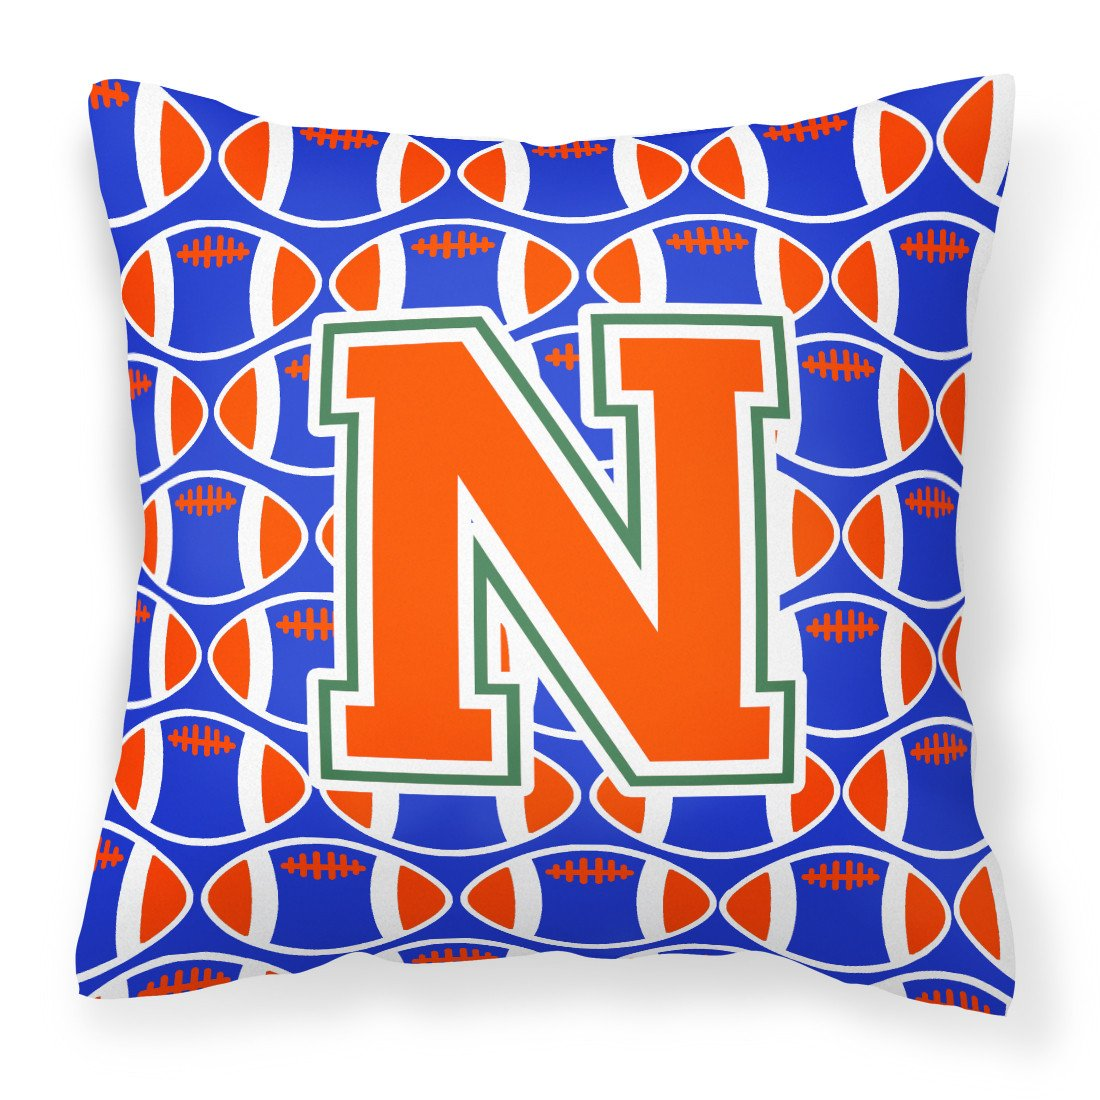 Letter N Football Green, Blue and Orange Fabric Decorative Pillow CJ1083-NPW1414 by Caroline's Treasures